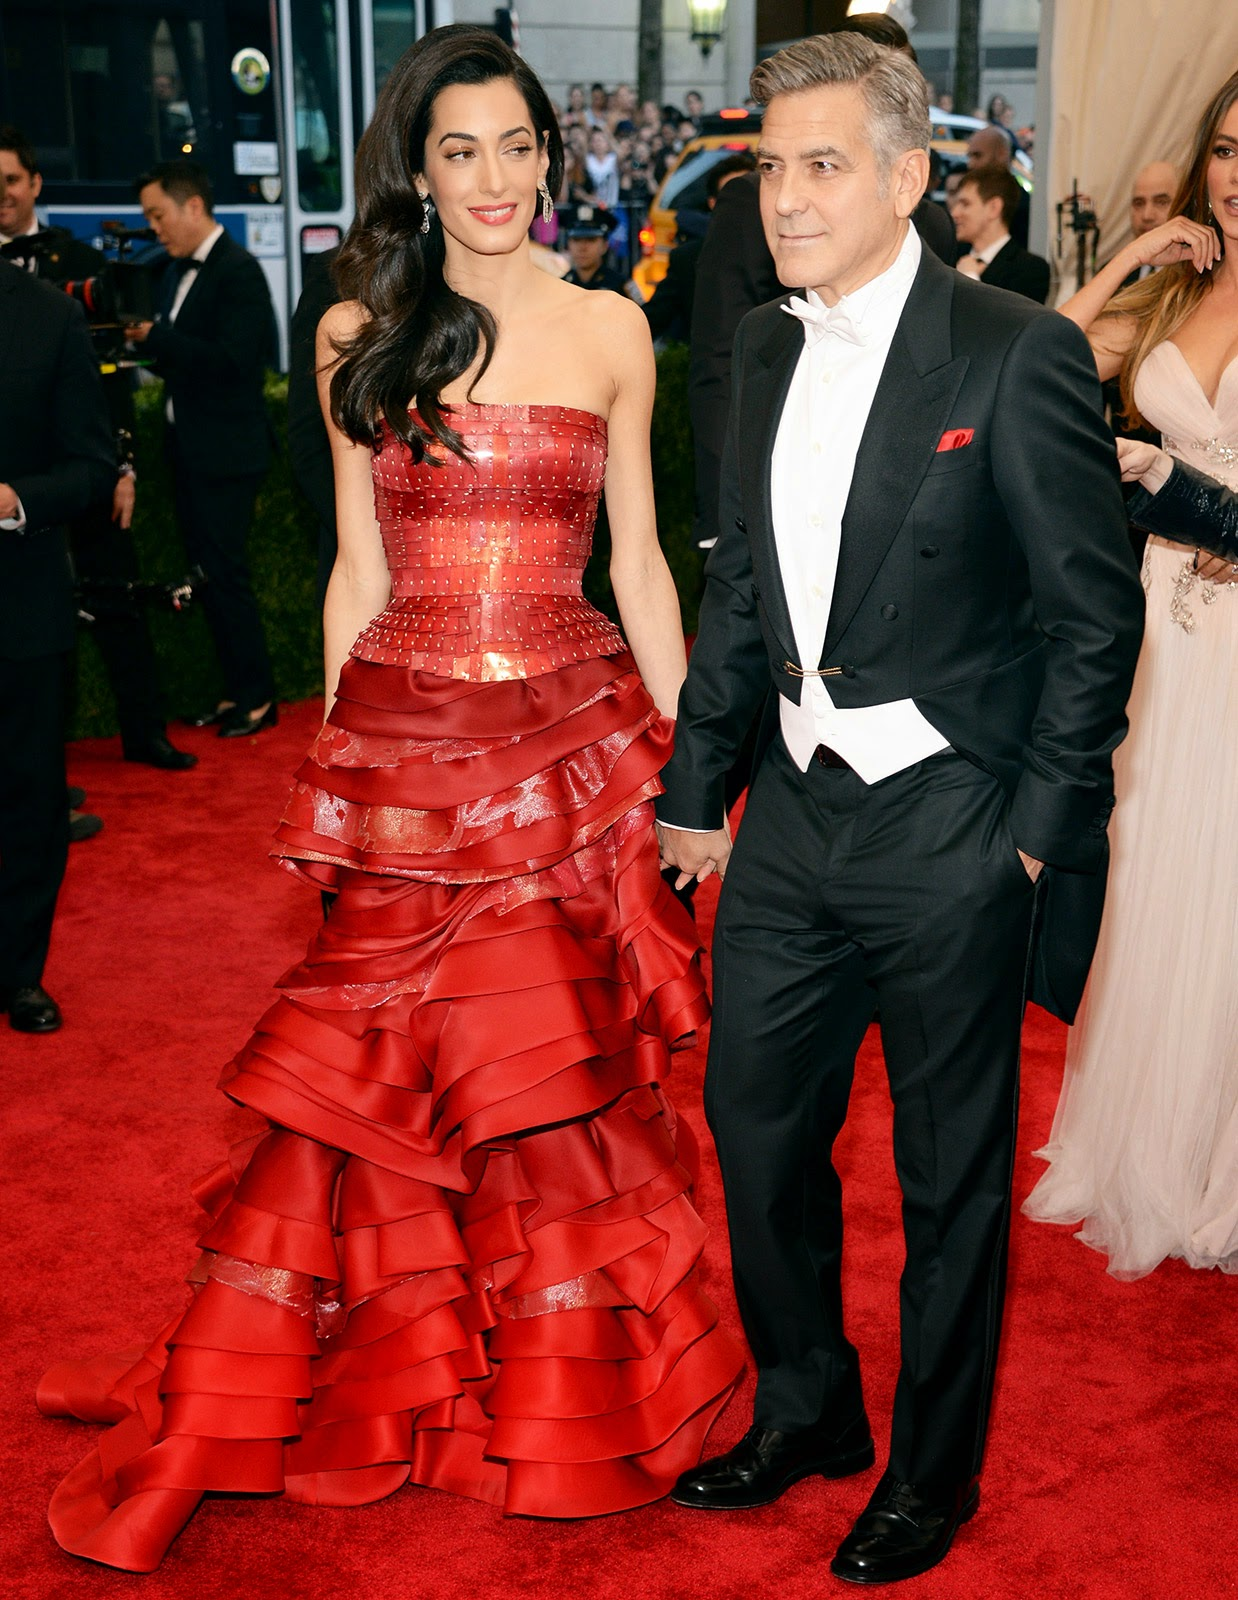 Amal Clooney stuns in a strapless gown at the 2015 Met Gala in NYC